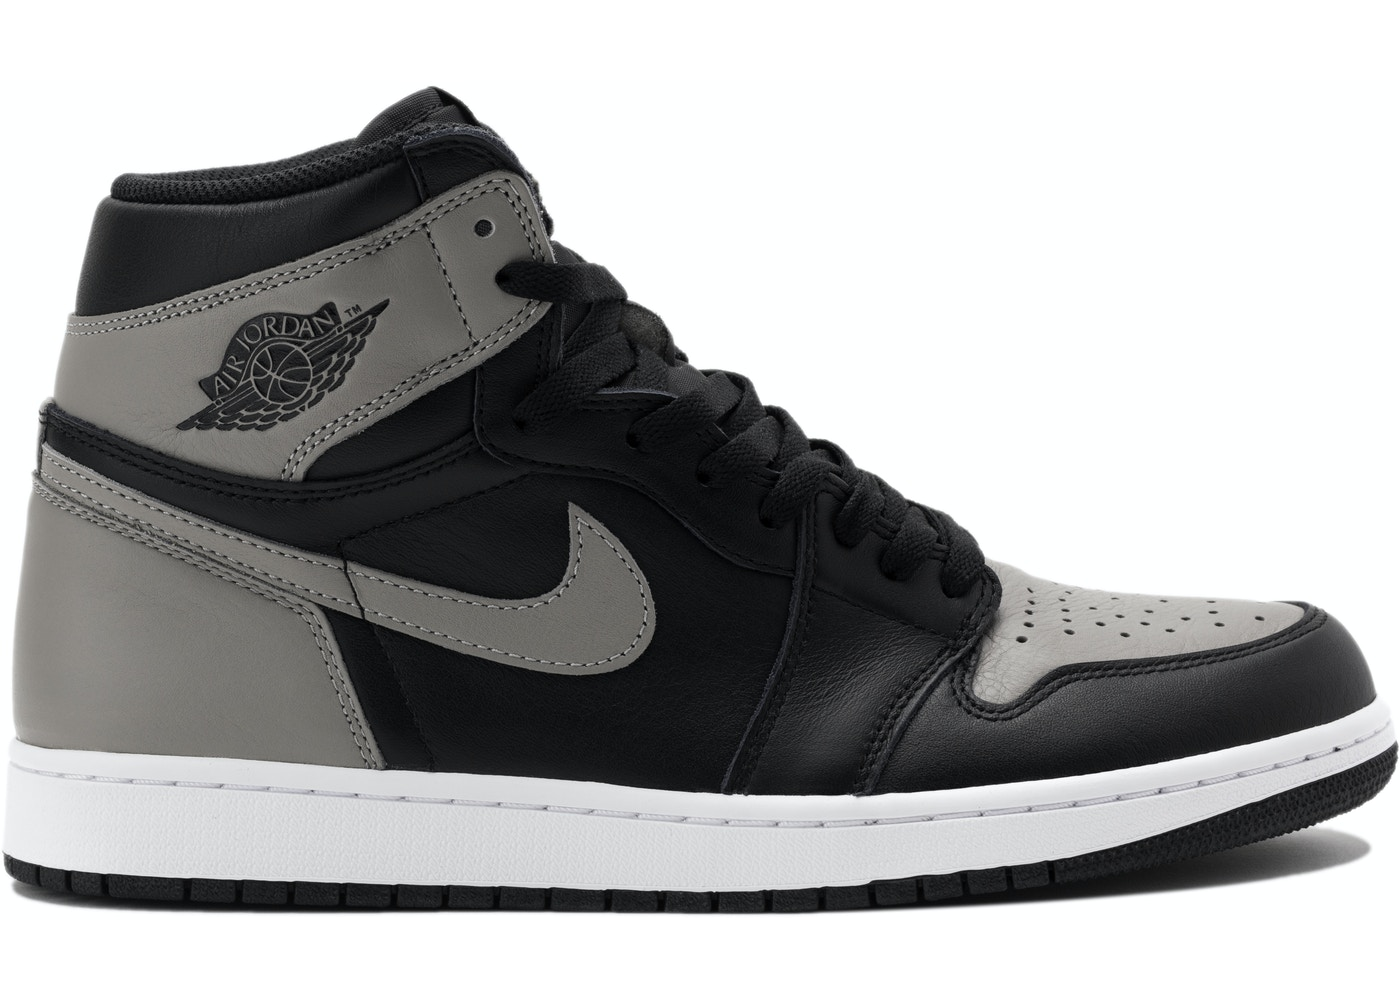 13acd5de9dc Jordan 1 Retro High Shadow (2018) - 555088-013